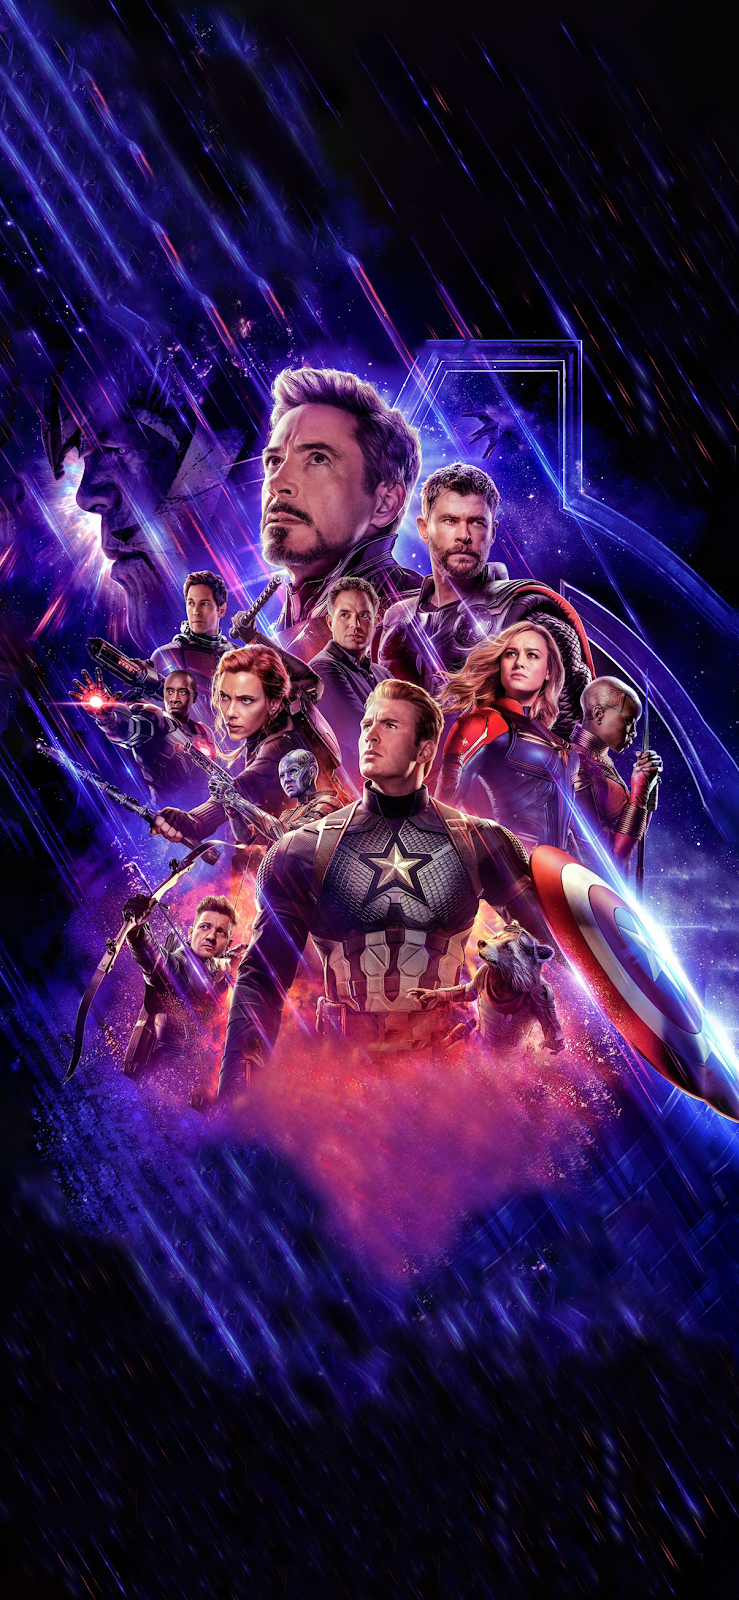 Avengers Endgame textless wallpaper iphone android